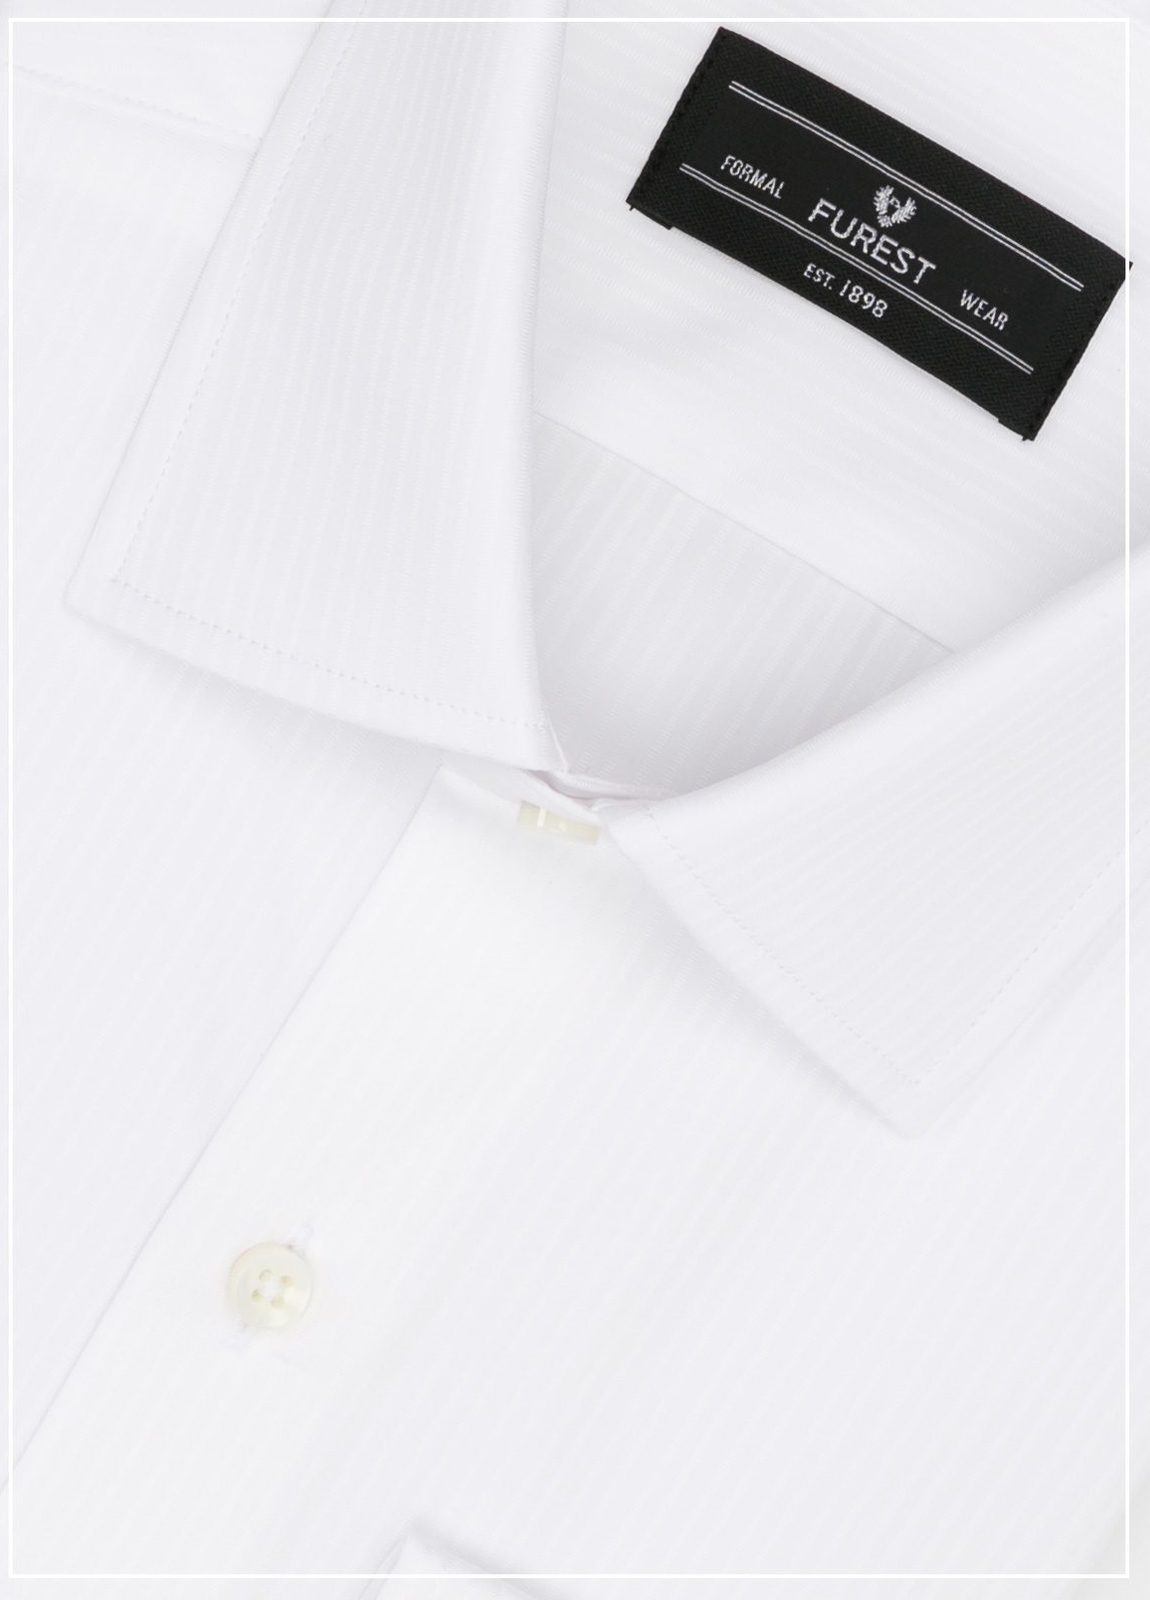 Camisa Formal Wear SLIM FIT cuello italiano modelo ROMA micro raya color blanco, 100% Algodón. - Ítem1